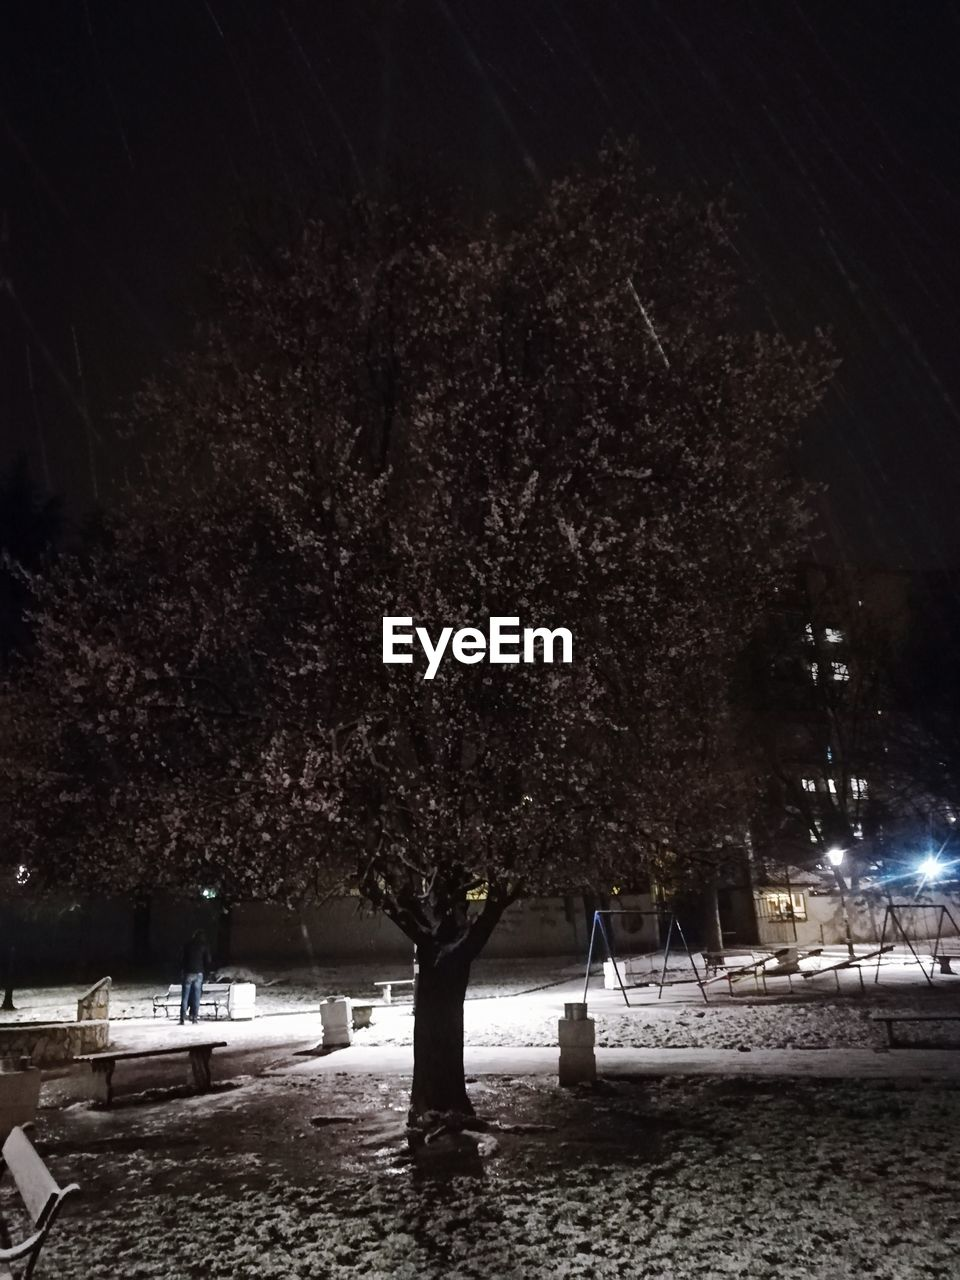 tree, plant, night, illuminated, nature, outdoors, land, no people, park, architecture, growth, beauty in nature, lighting equipment, field, park - man made space, snow, built structure, dark, street